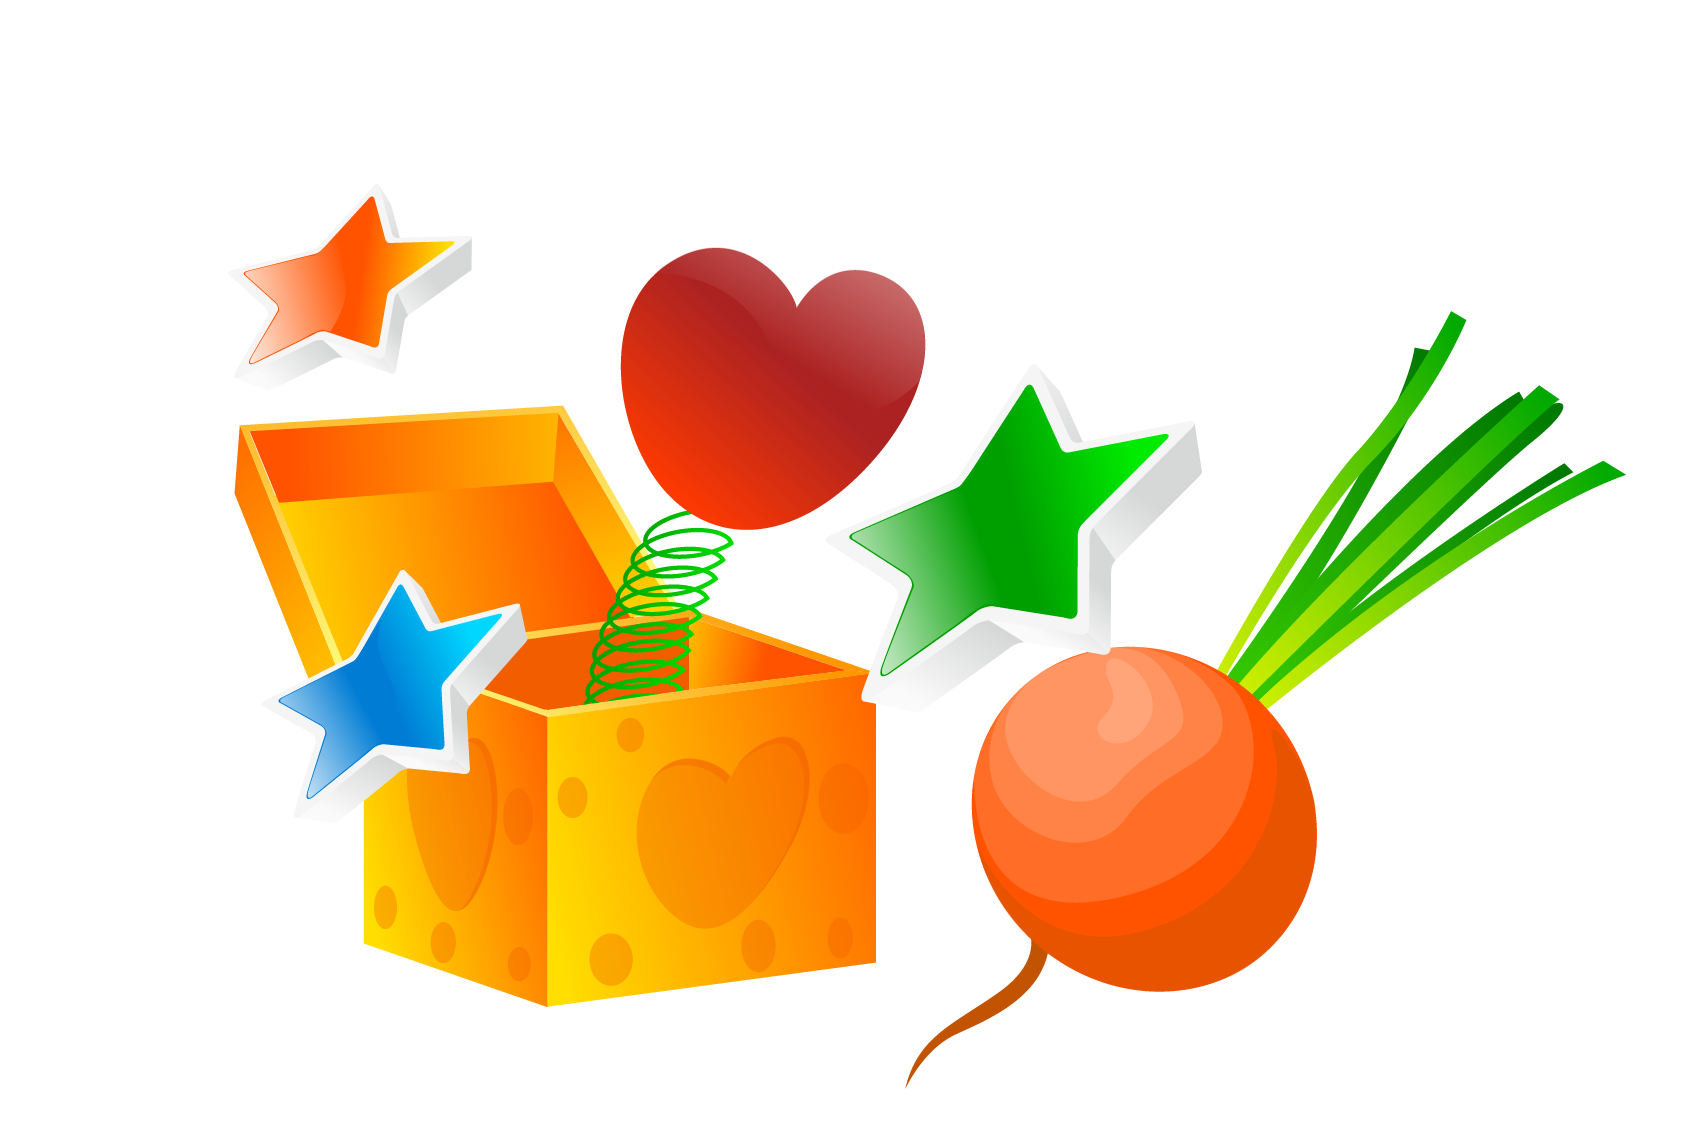 Magic clipart vector png. Valentine s day gift